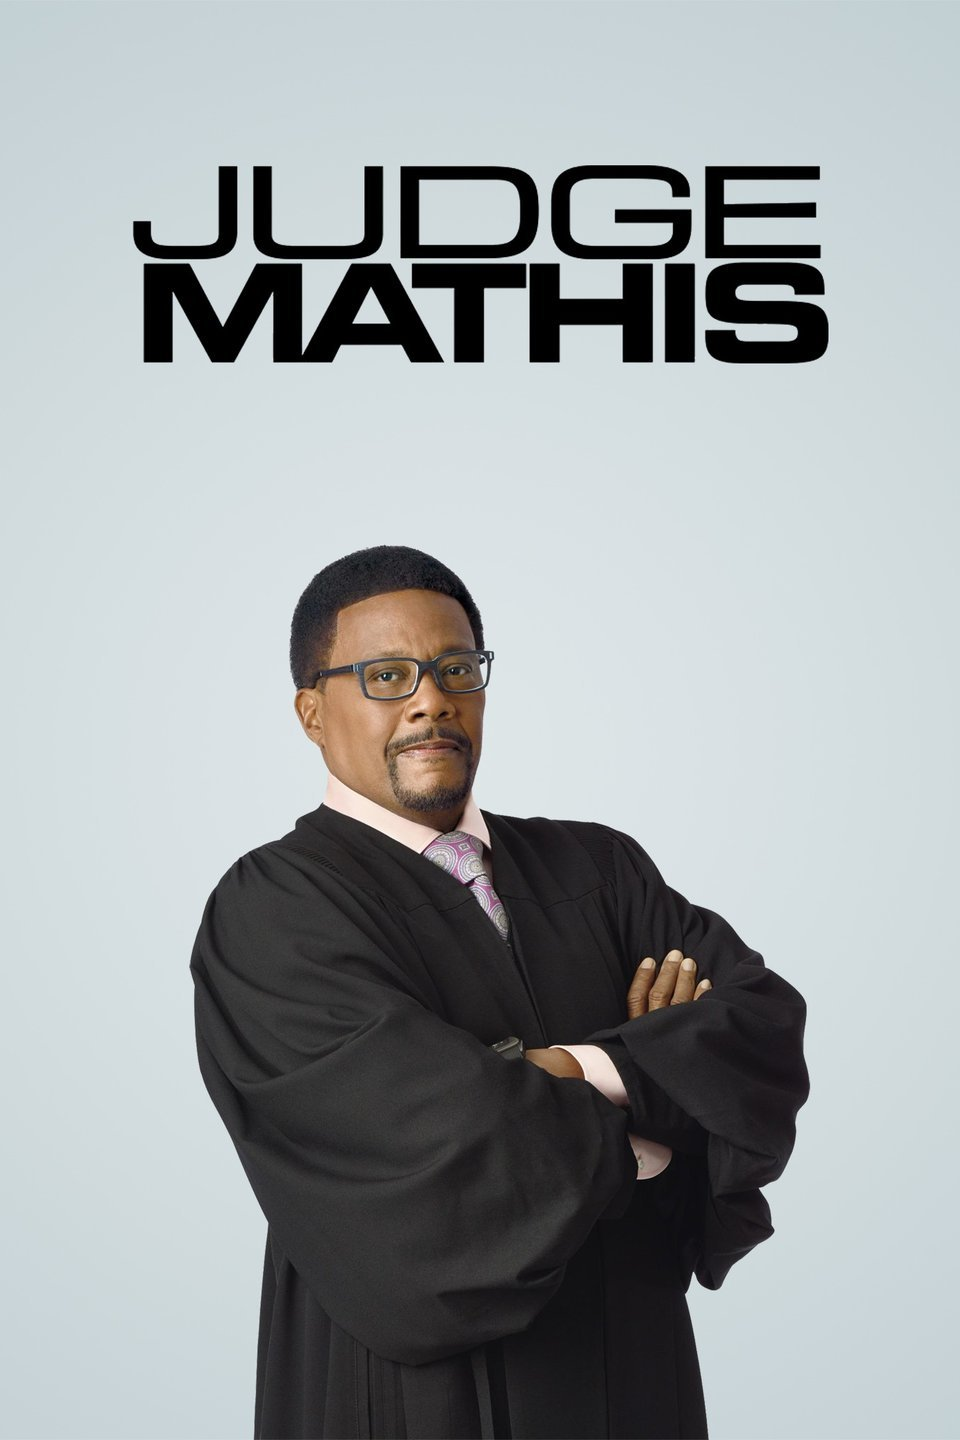 Judge.Mathis.S22E42.HDTV.x264-CRiMSON